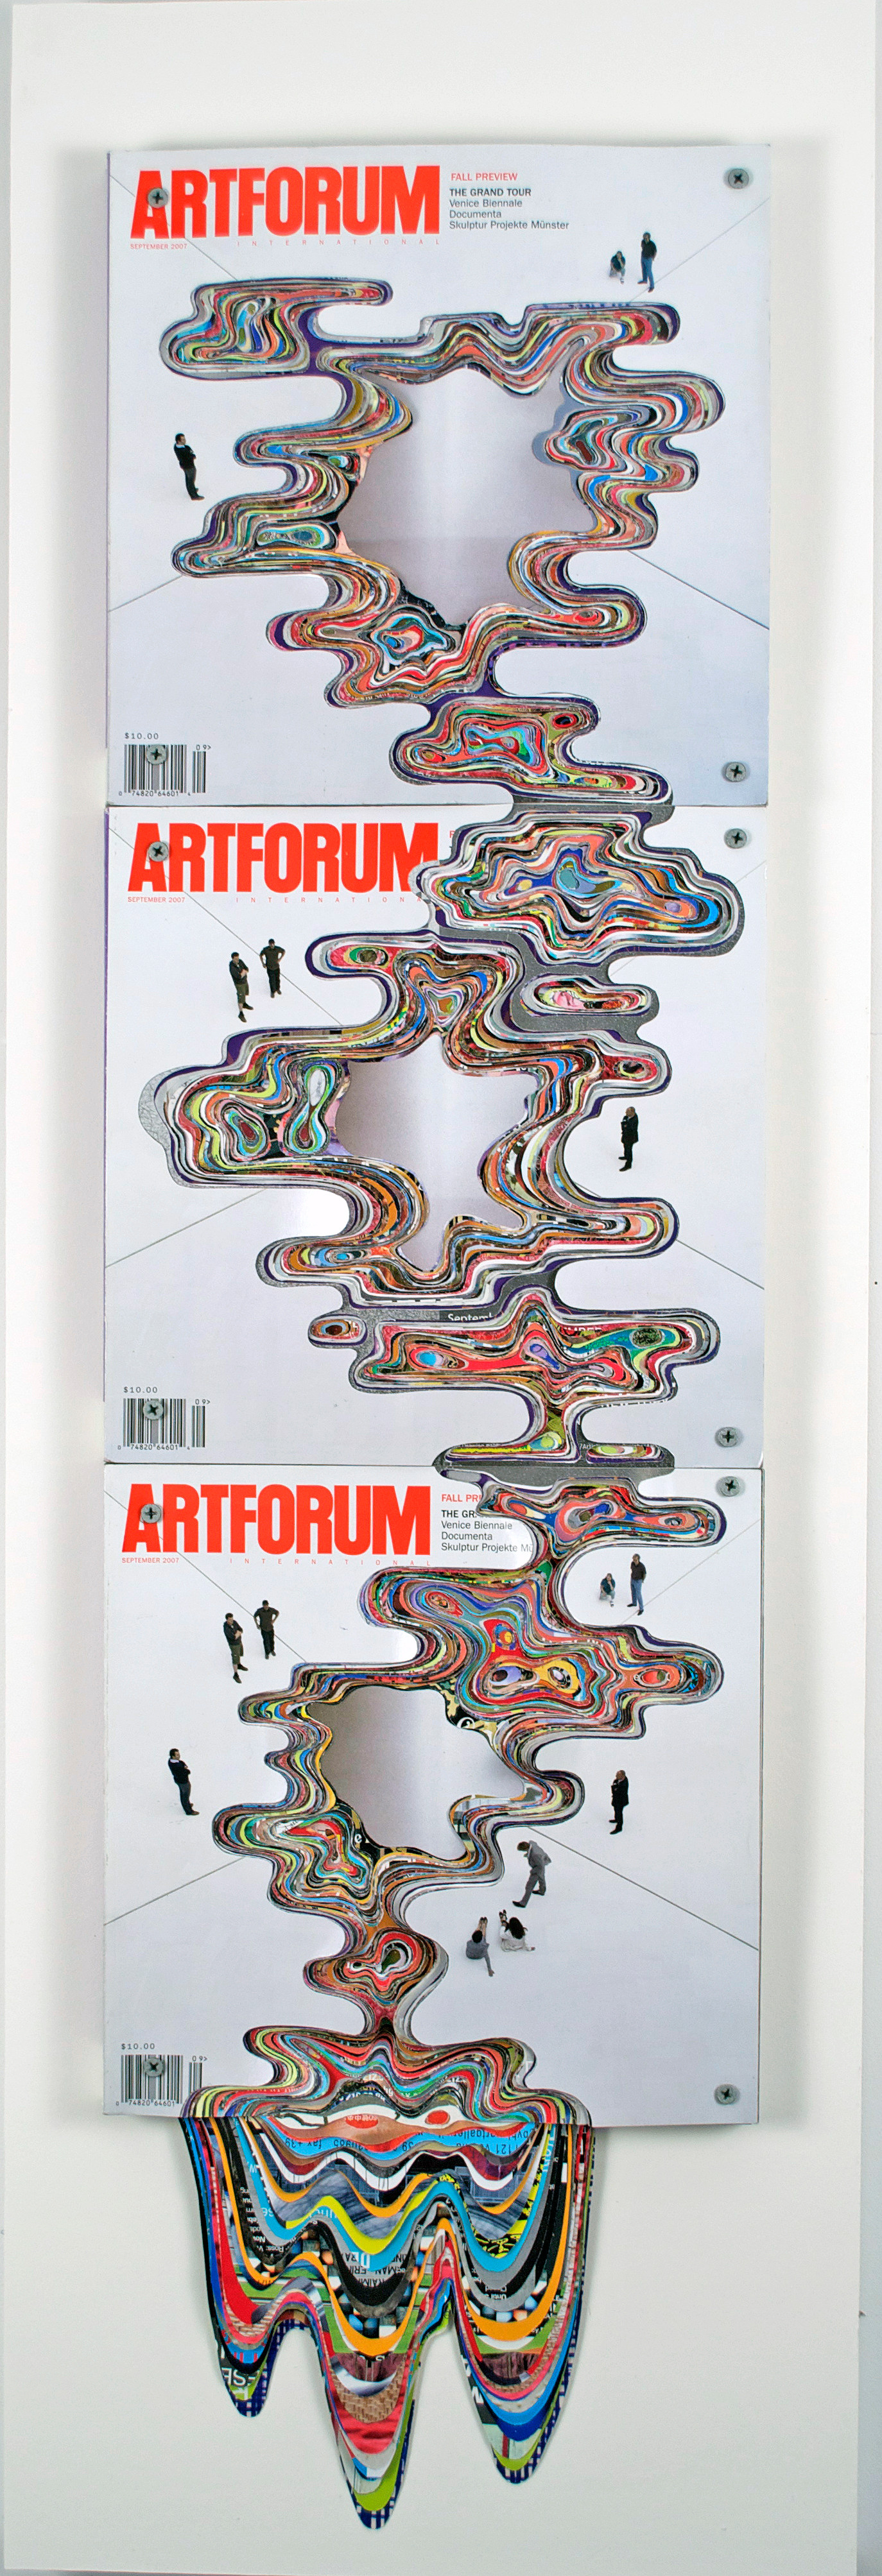 ArtForum #35, Unsolicited Collaboration with Bruce Naumann